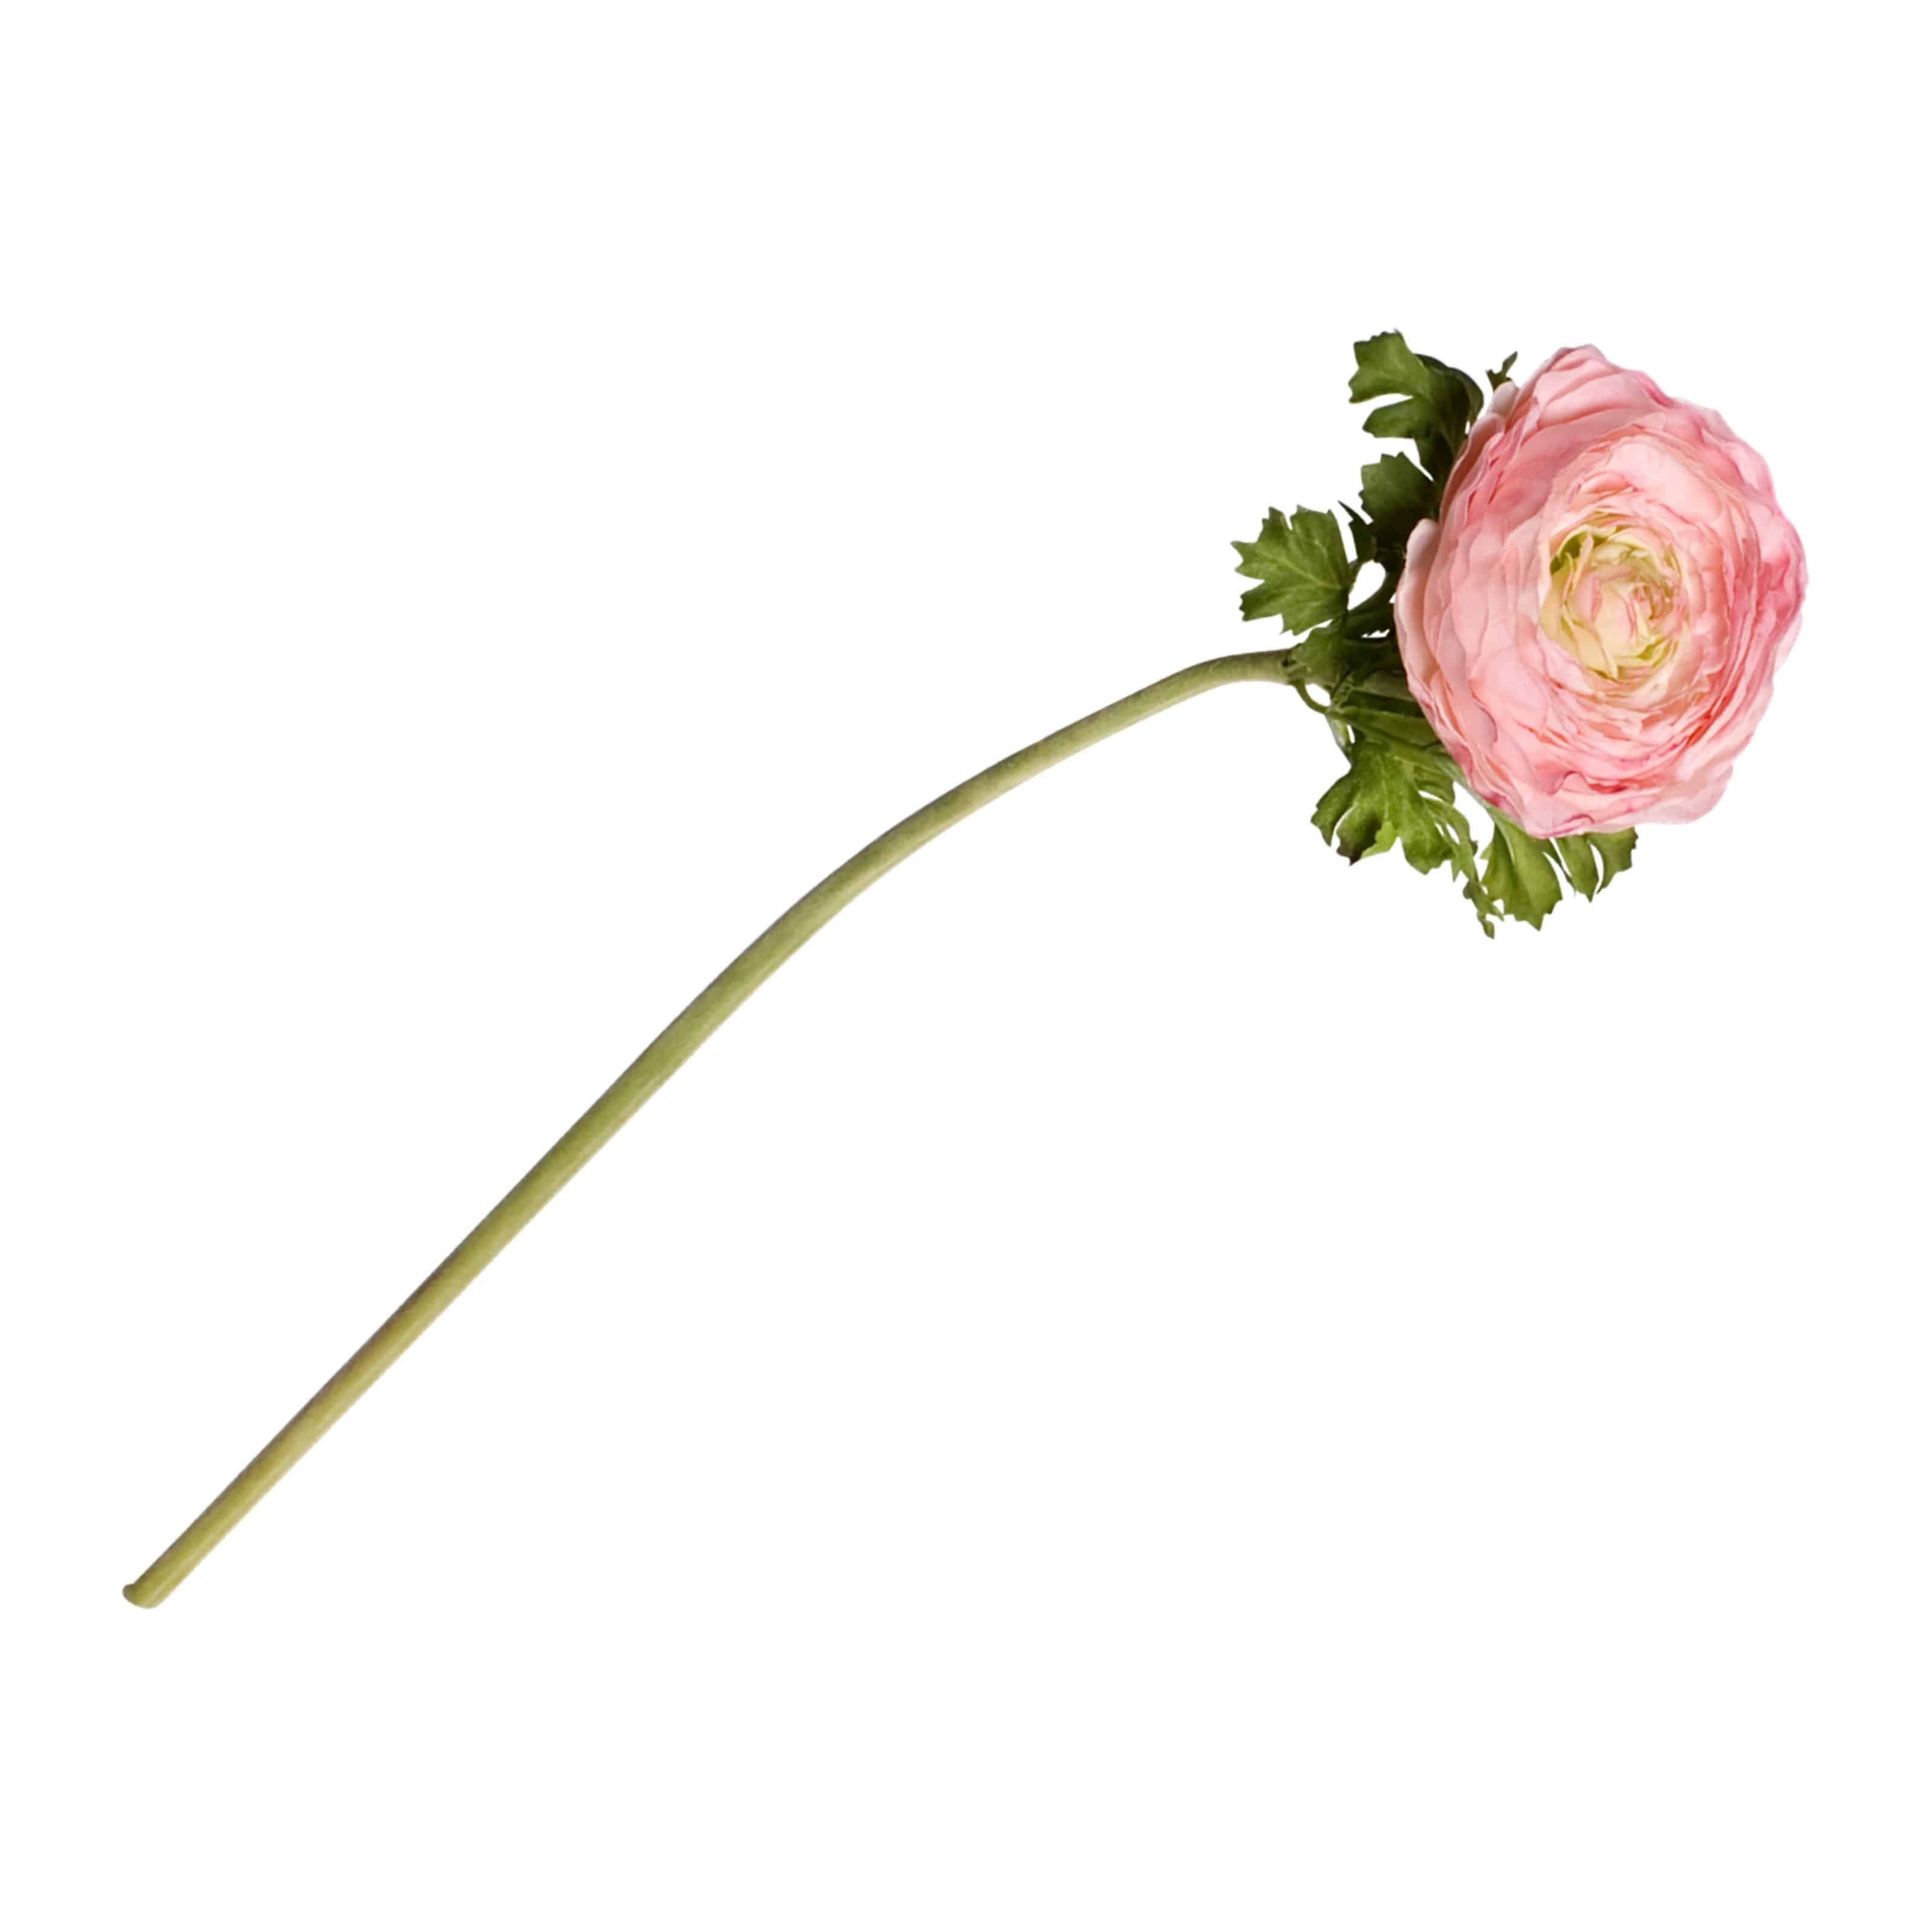 Buy full bloomed artificial ranunculus is wonderfully designed to show this flower at its finest. Natural pink colour is superbly lifelike authentic centre.